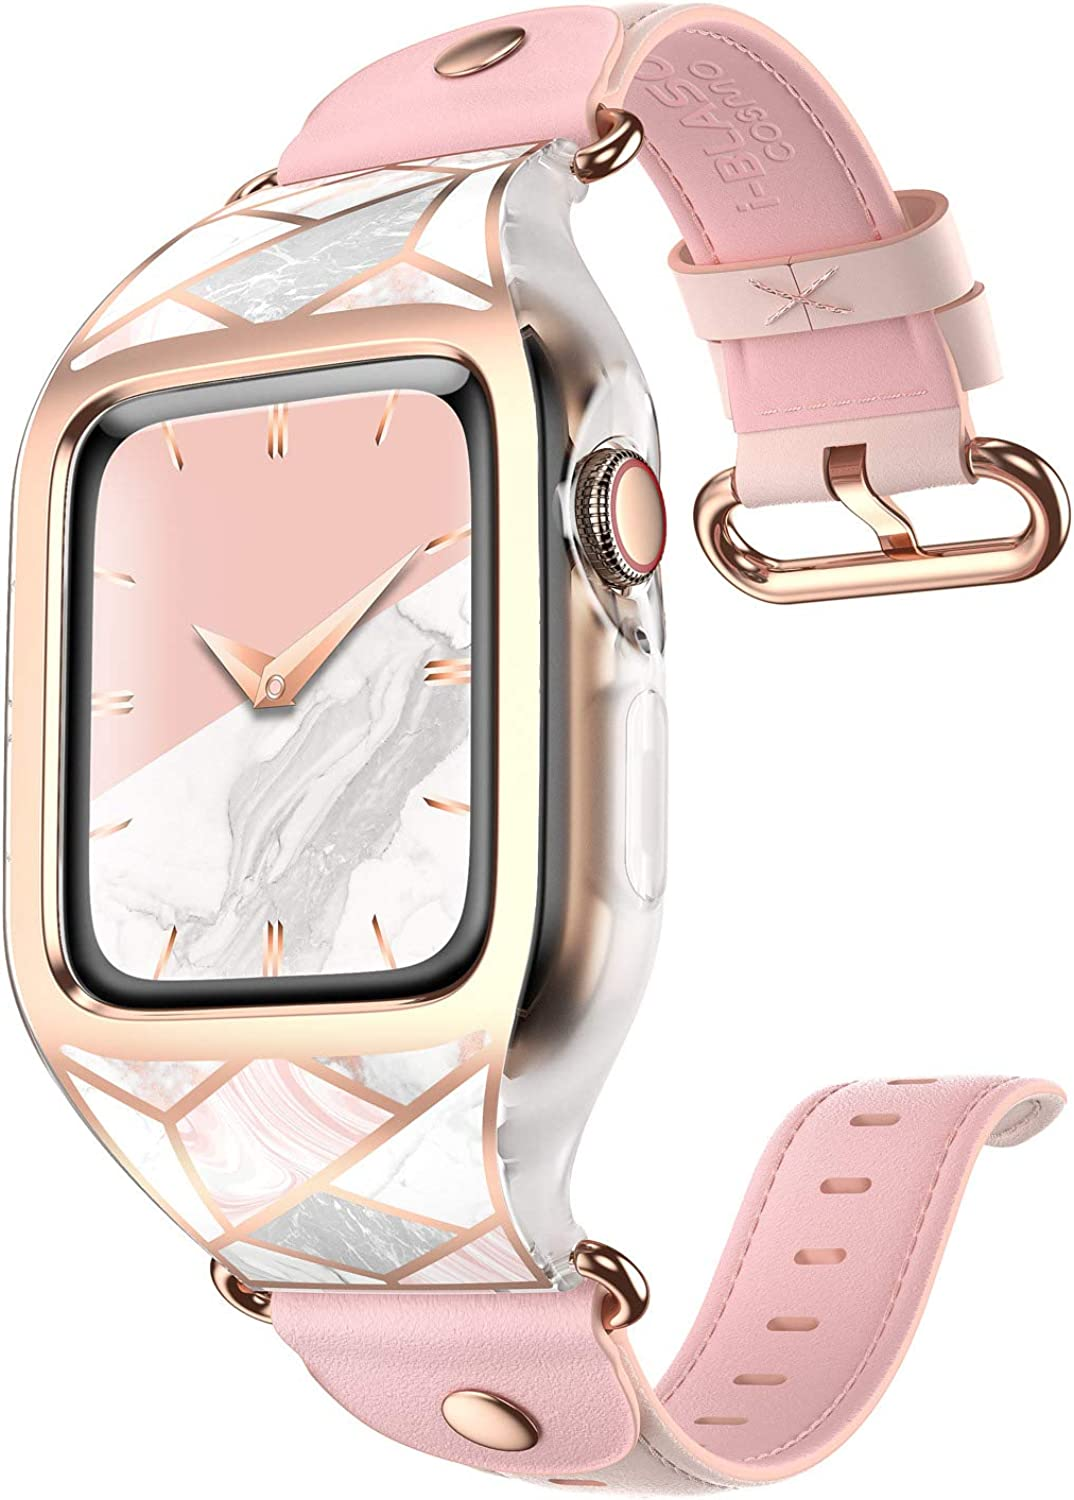 i-Blason Band Designed for Apple Watch Series 6/SE/5/4 [44mm], [Cosmo] Stylish Sporty Protective Bumper Case with Adjustable Strap Bands